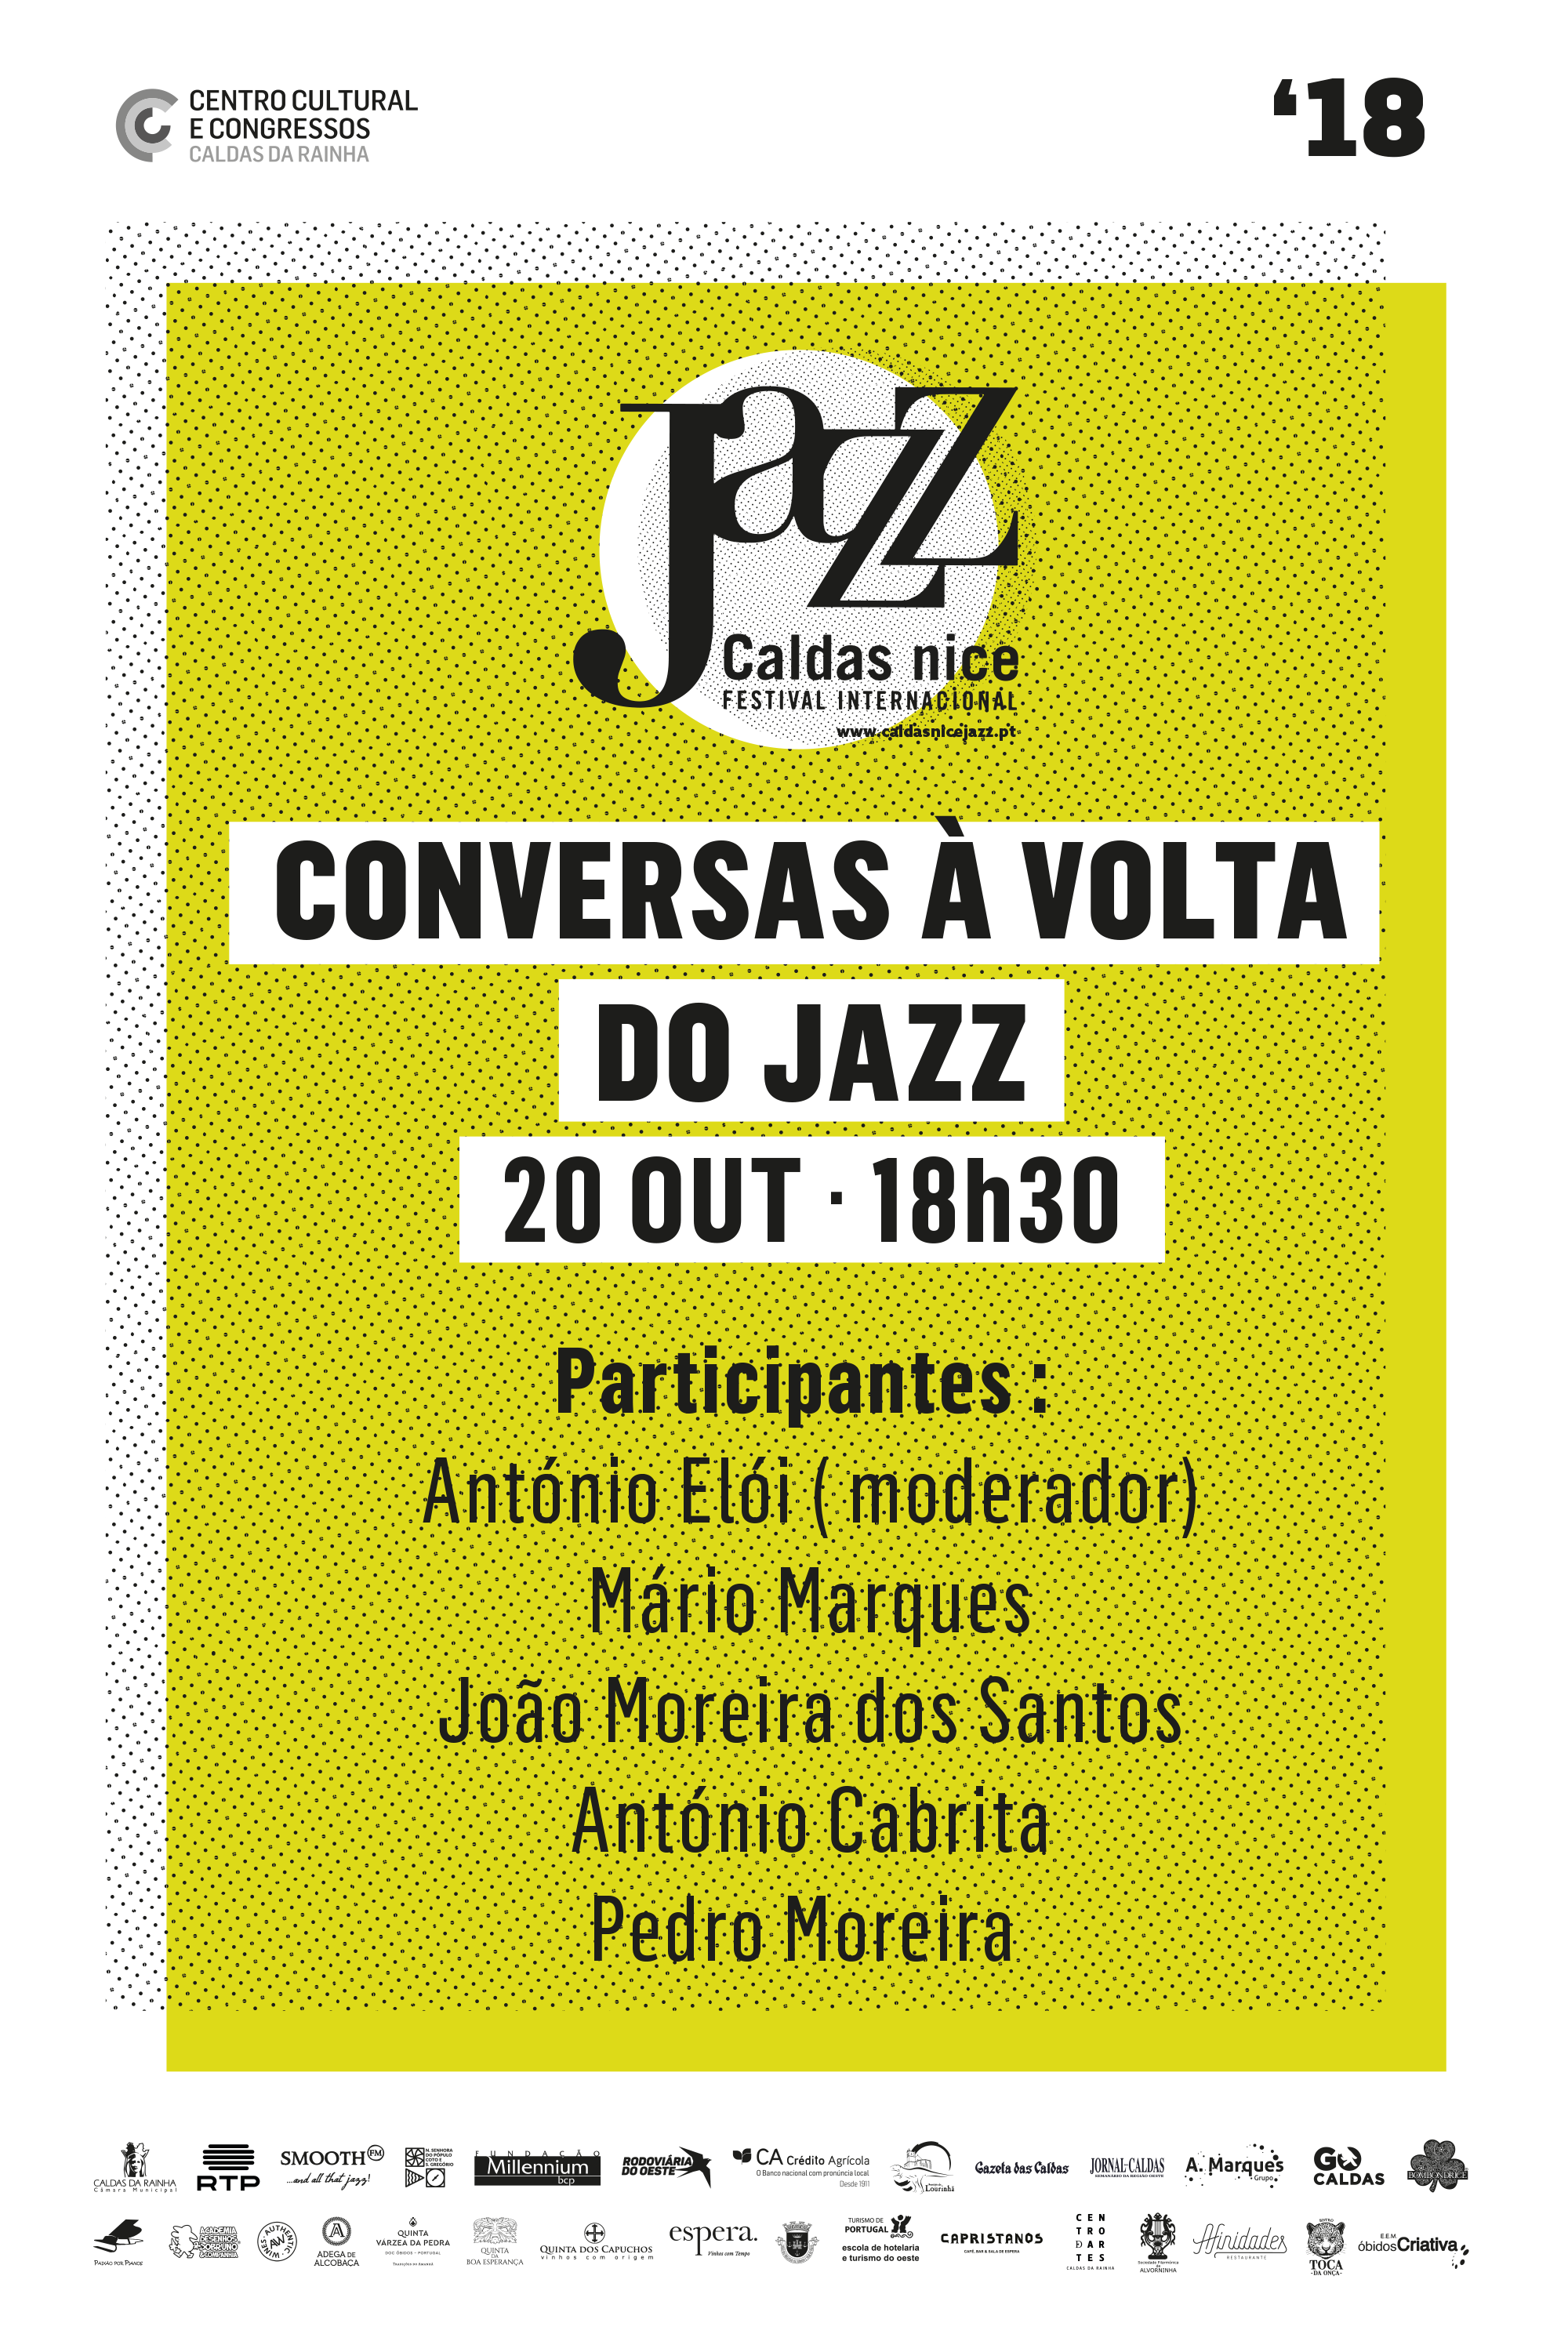 Conversas à volta do Jazz i Caldas da Rainha